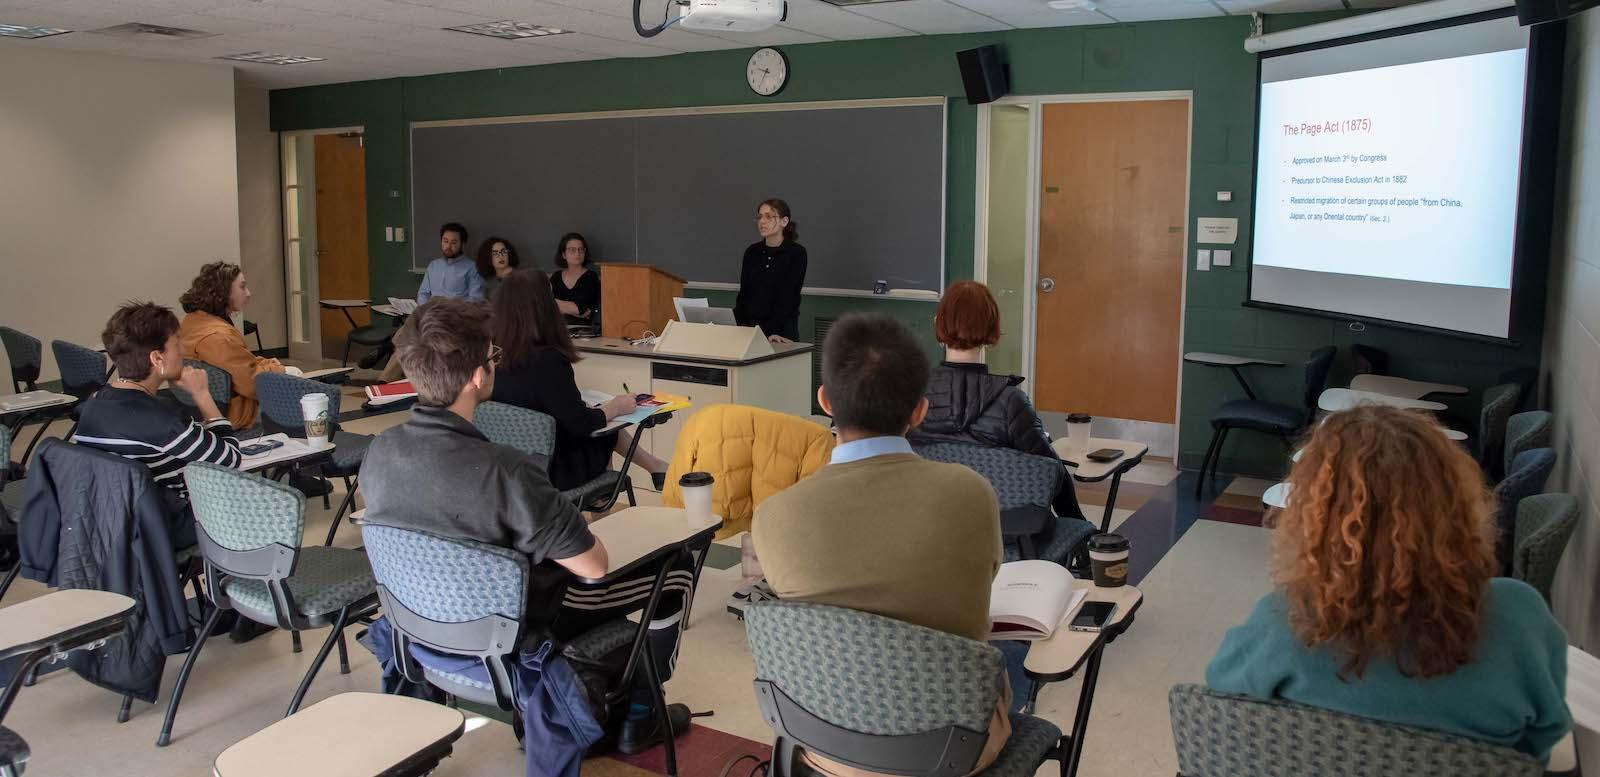 classroom of students with three in the front making a presentation